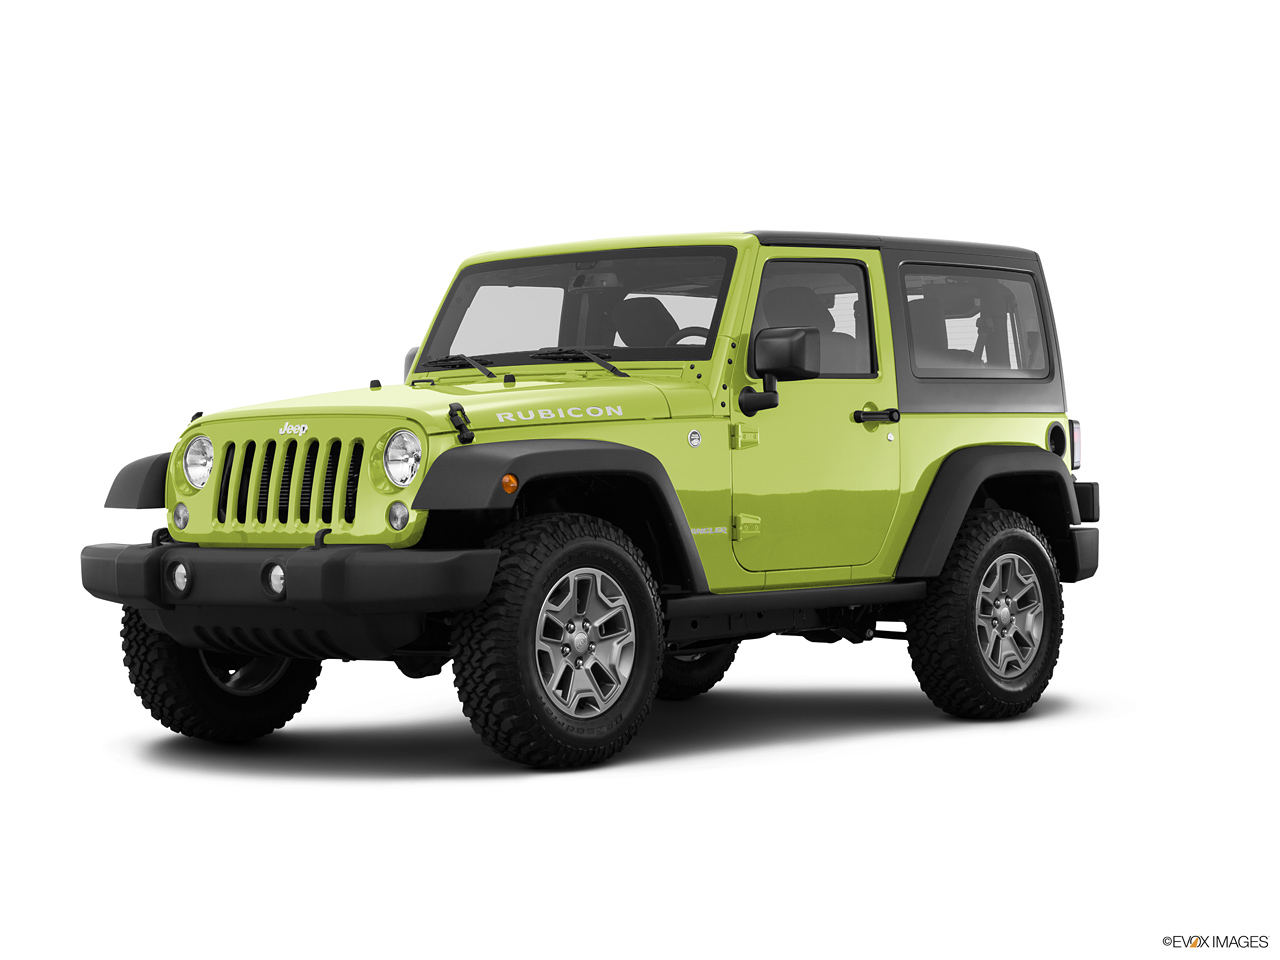 car features list for jeep wrangler 2016 rubicon 3 6l auto uae yallamotor. Black Bedroom Furniture Sets. Home Design Ideas